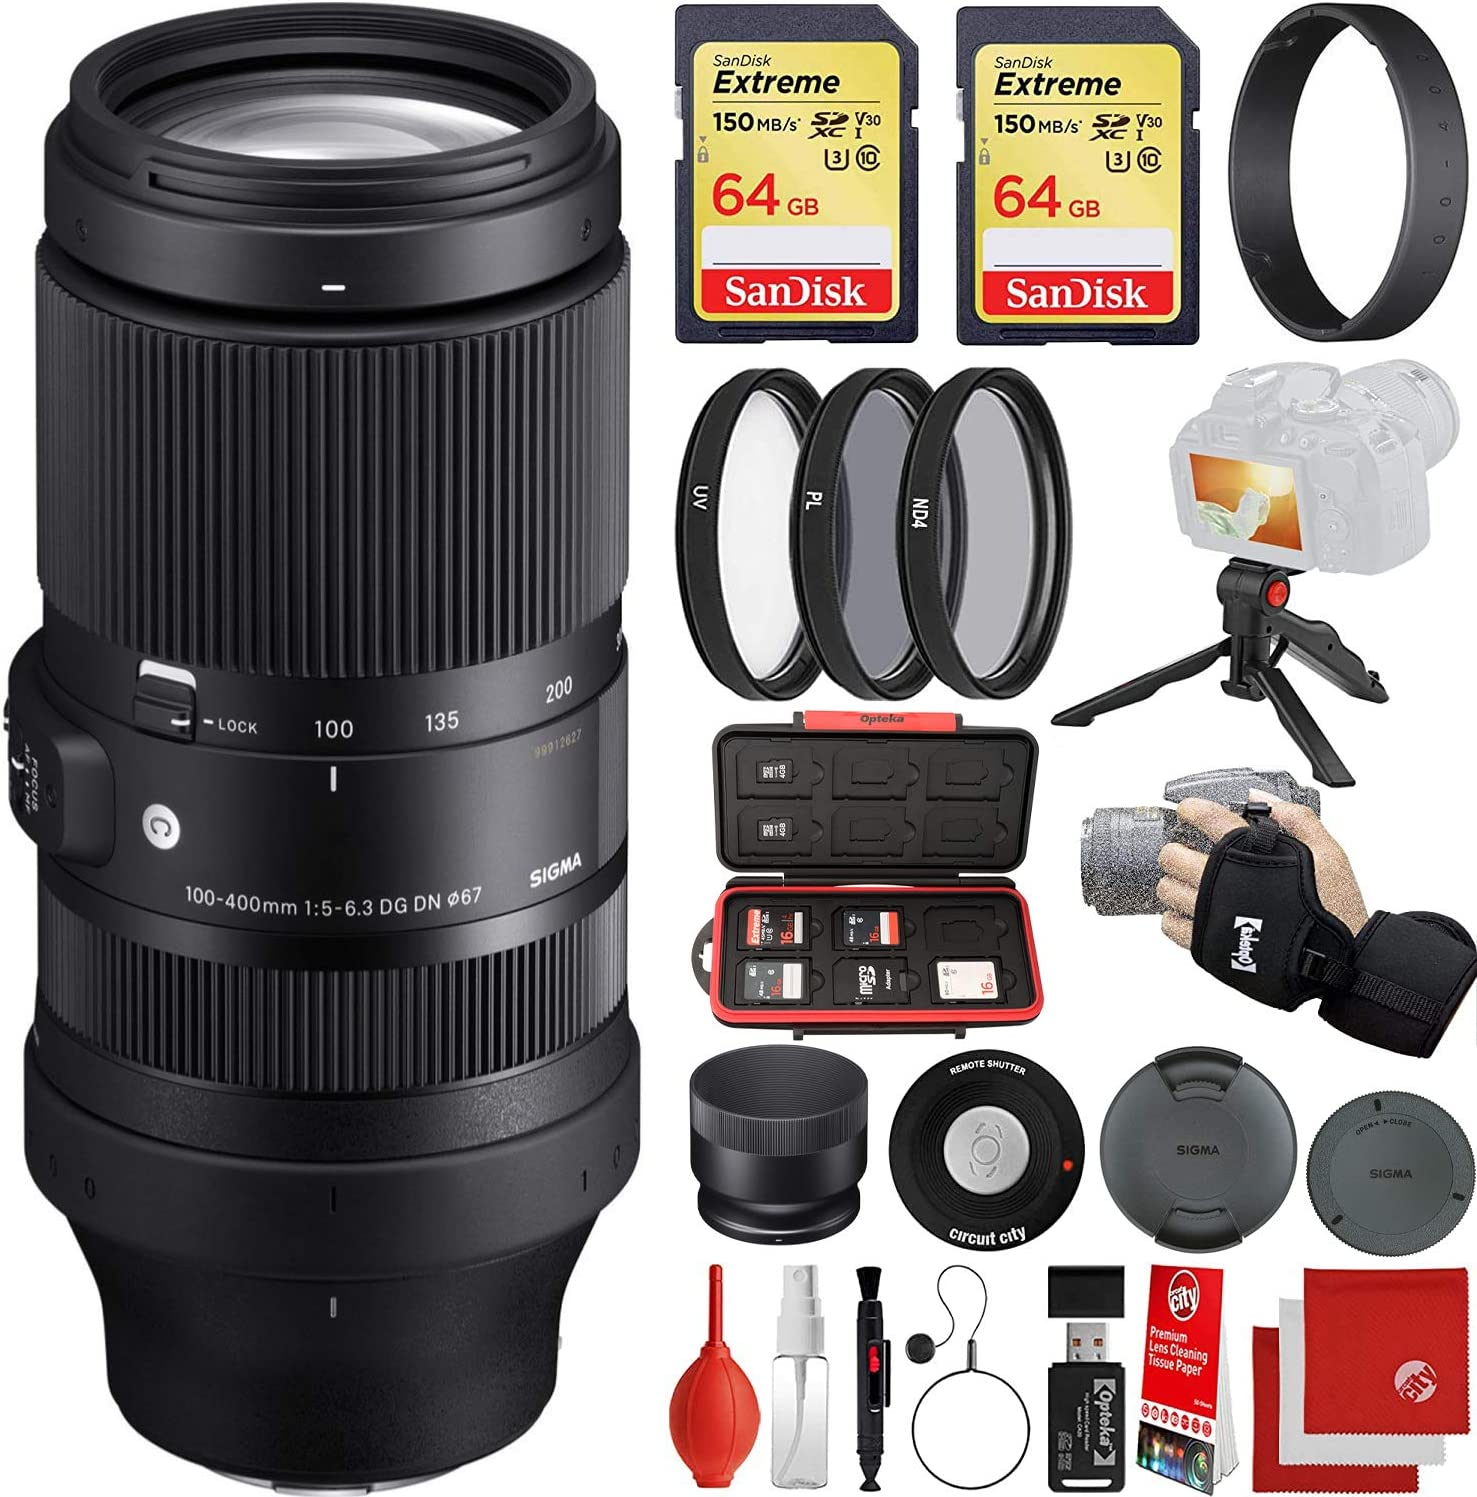 Sigma 100-400mm f/5-6.3 DG DN OS Contemporary Lens Sony E-Mount Bundle with 2X 64GB Memory Cards, IR Remote, 3 Piece Filter Kit, Wrist Strap, Card Reader, Memory Card Case, Tabletop Tripod